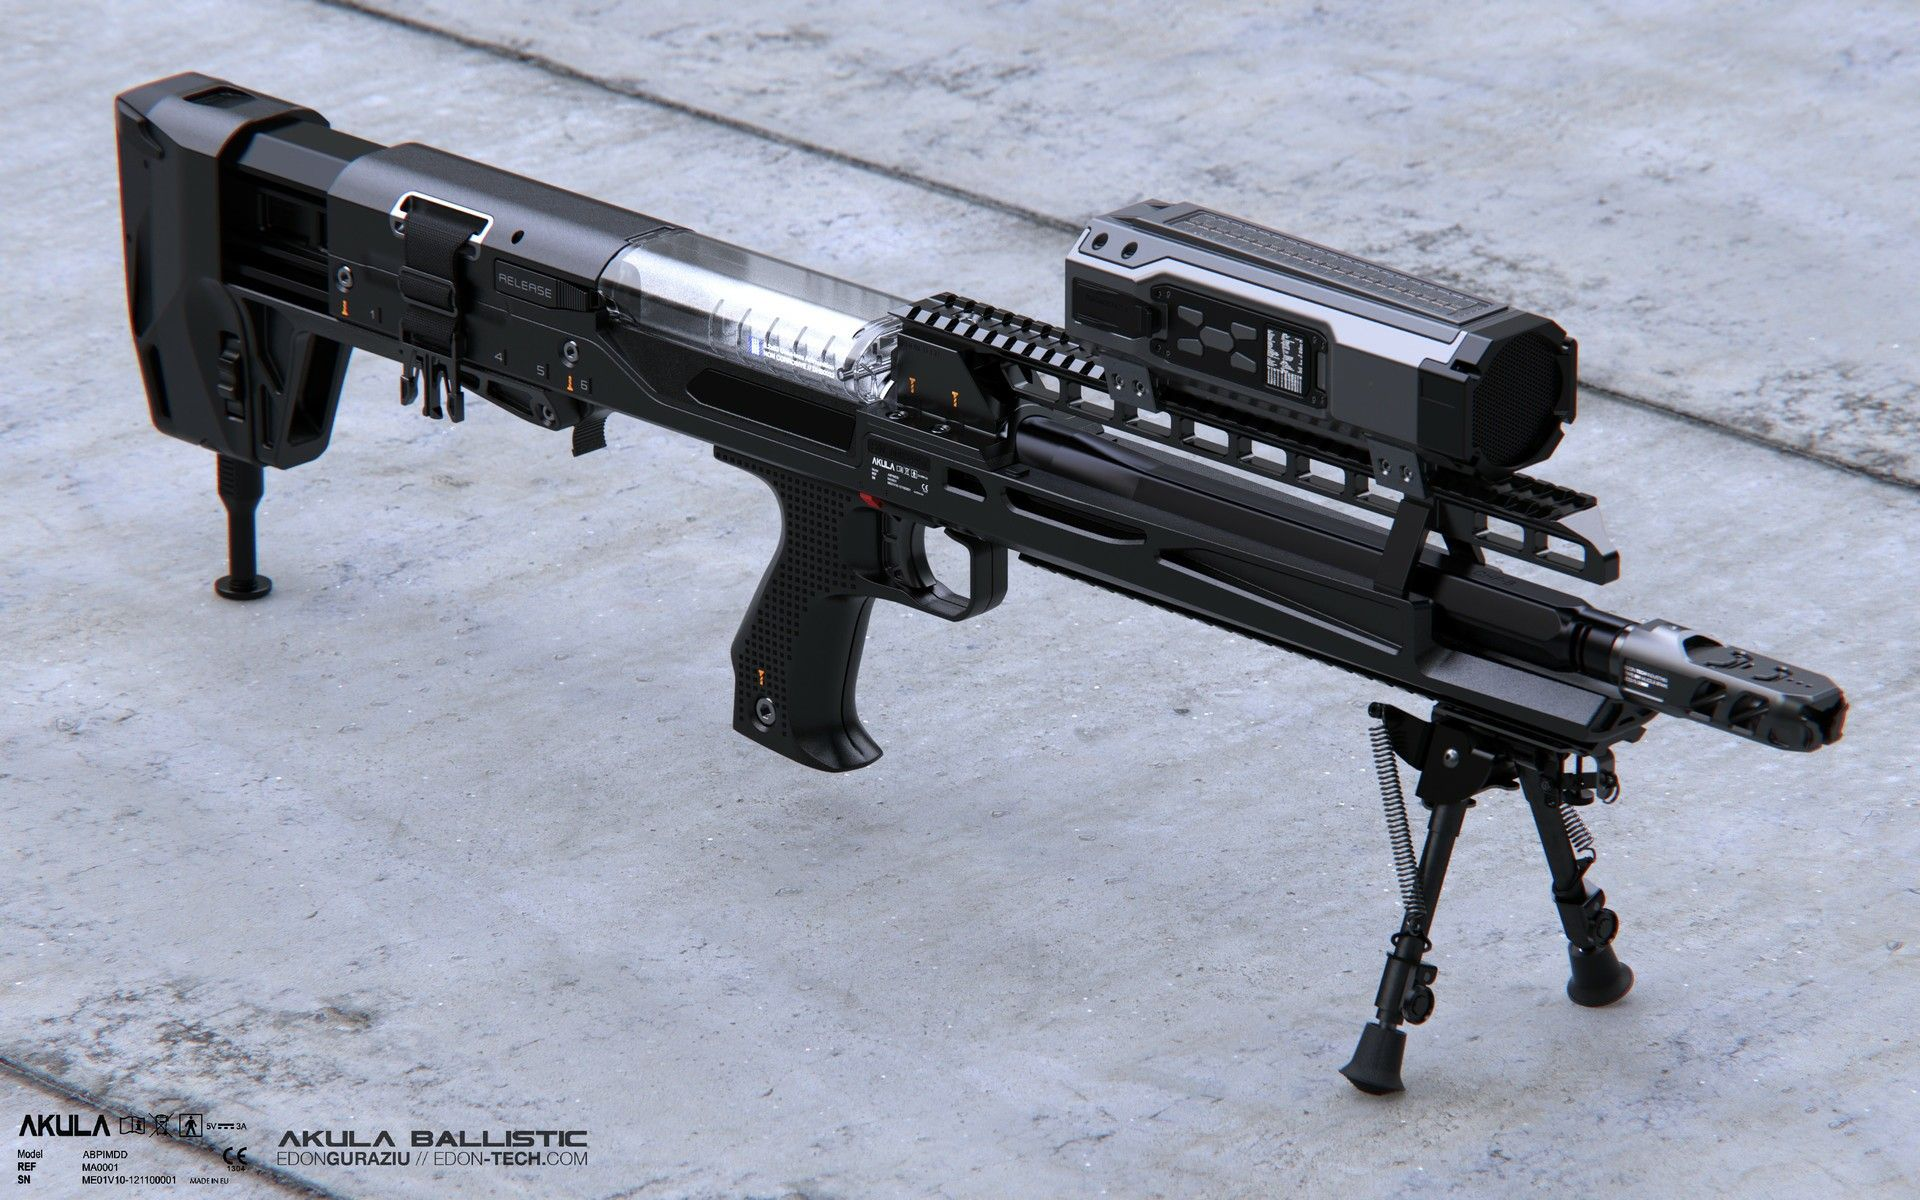 Pin by Jakub Ben on DSGN [weapons] | Concept weapons ...